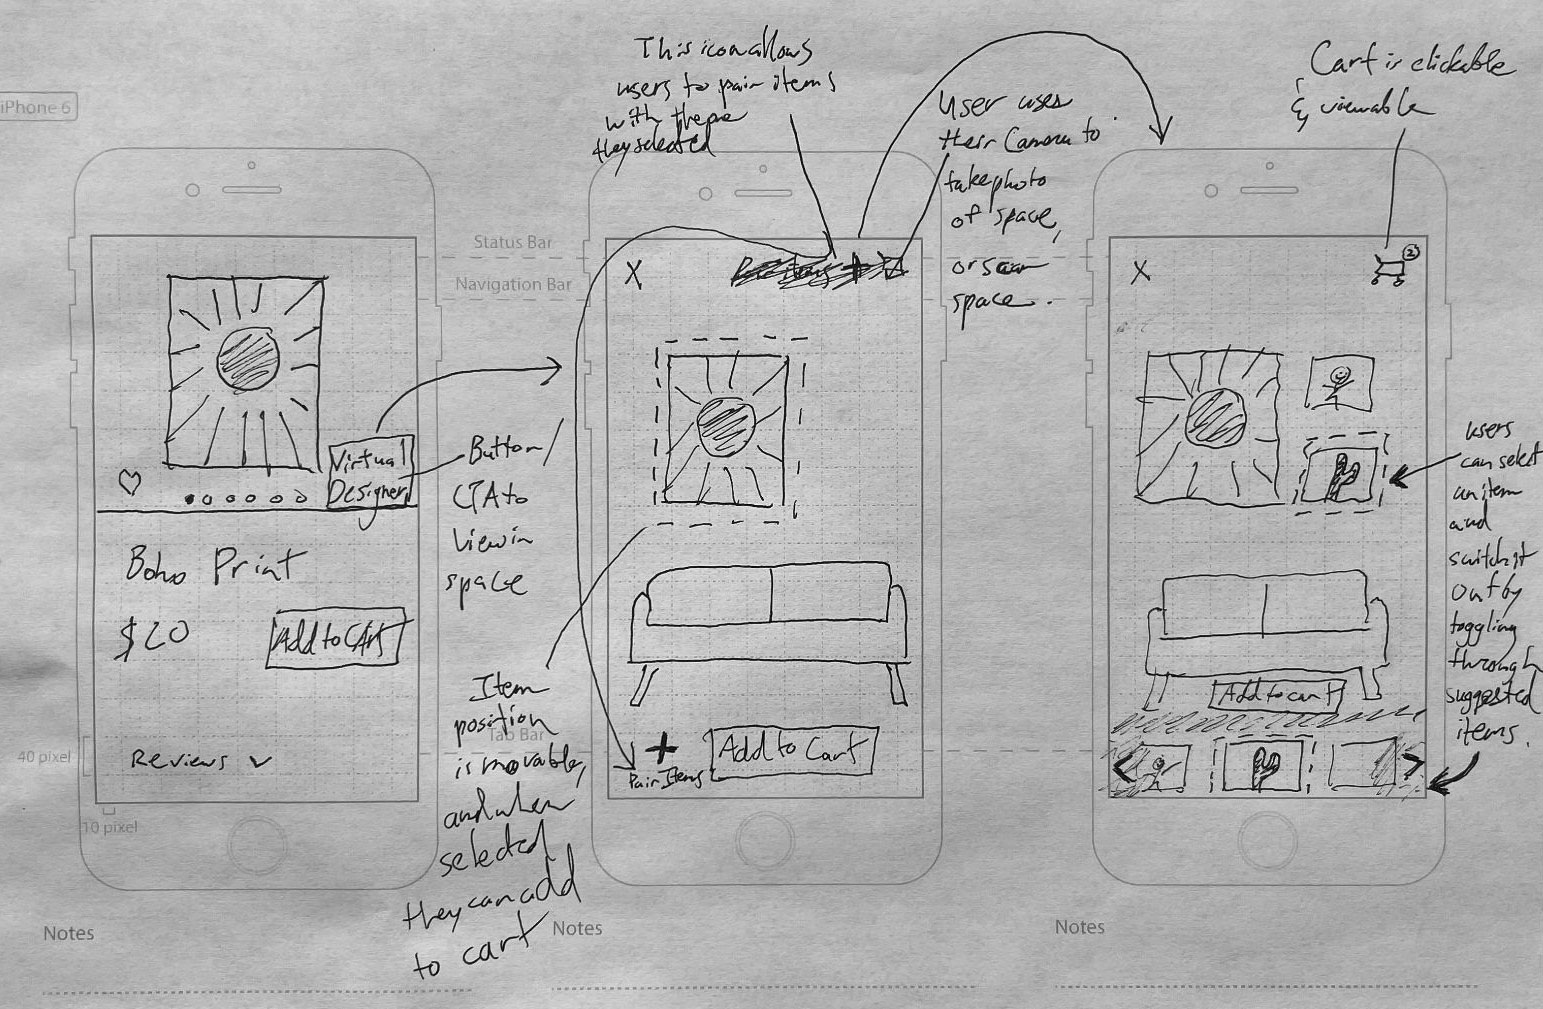 Chosen solution sketch with product page, app page, and checkout